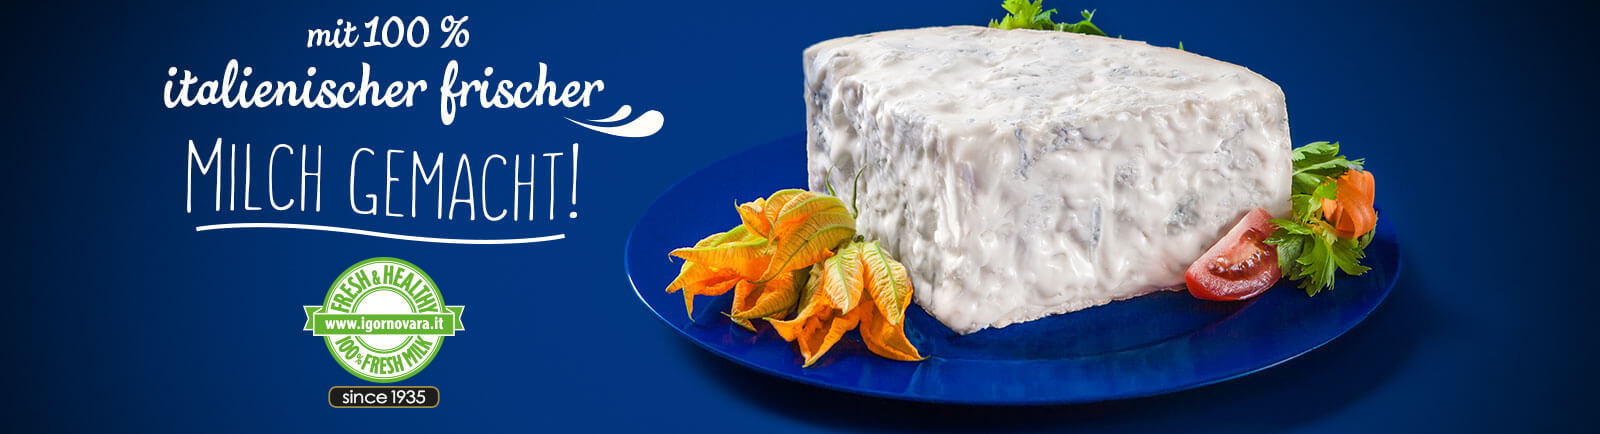 Gorgonzola Fresh & Healthy since 1935!